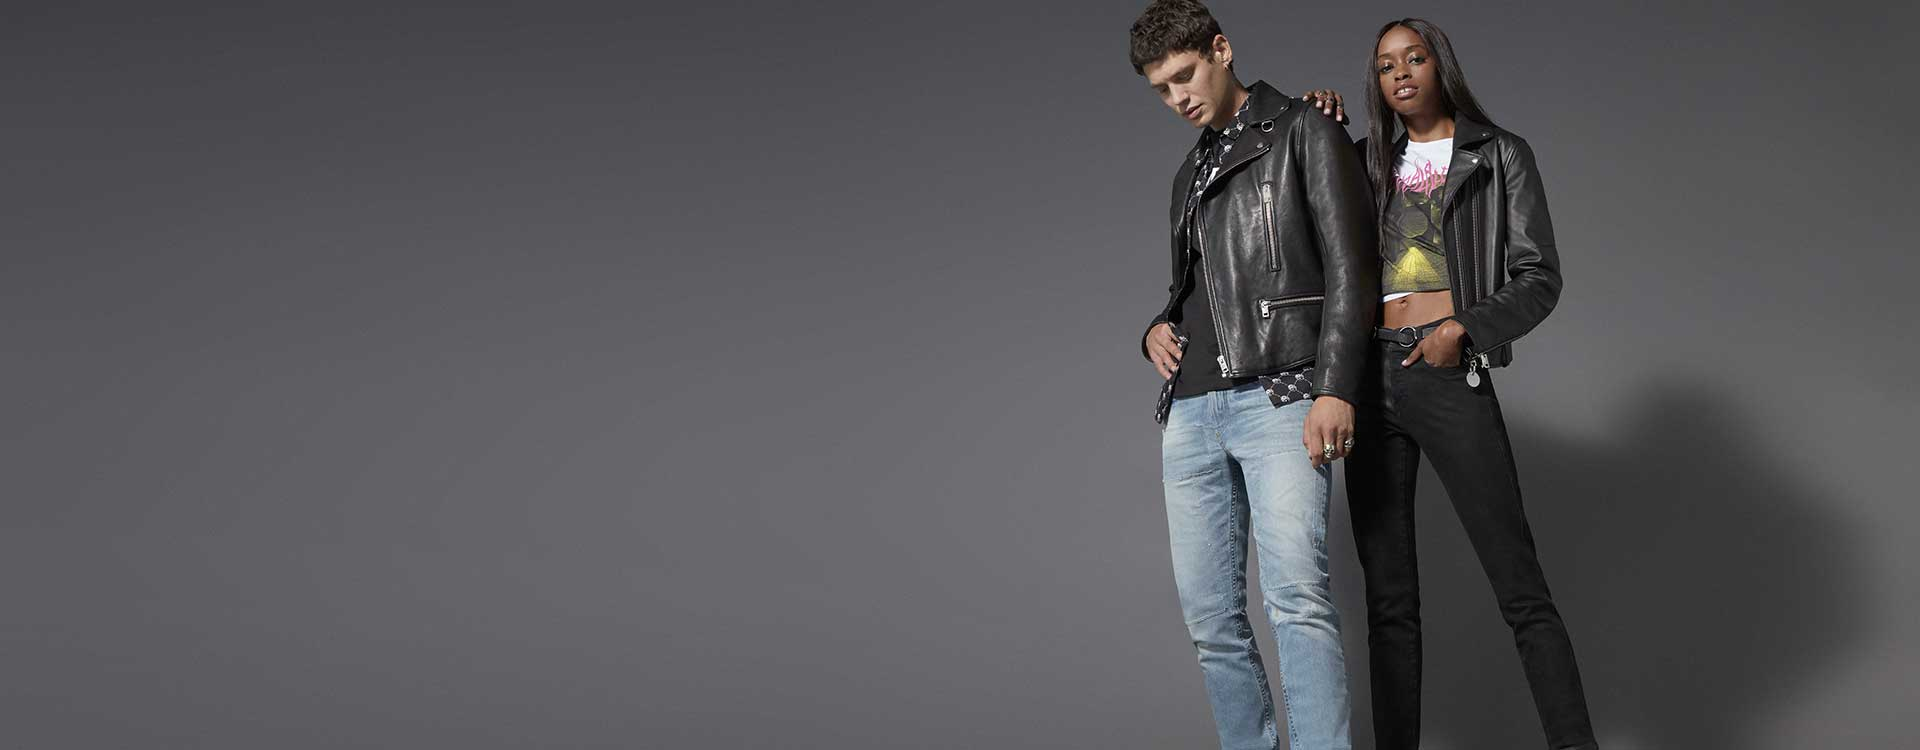 Shop the Newest Collection | Diesel Jeans & Apparel for Men and Women